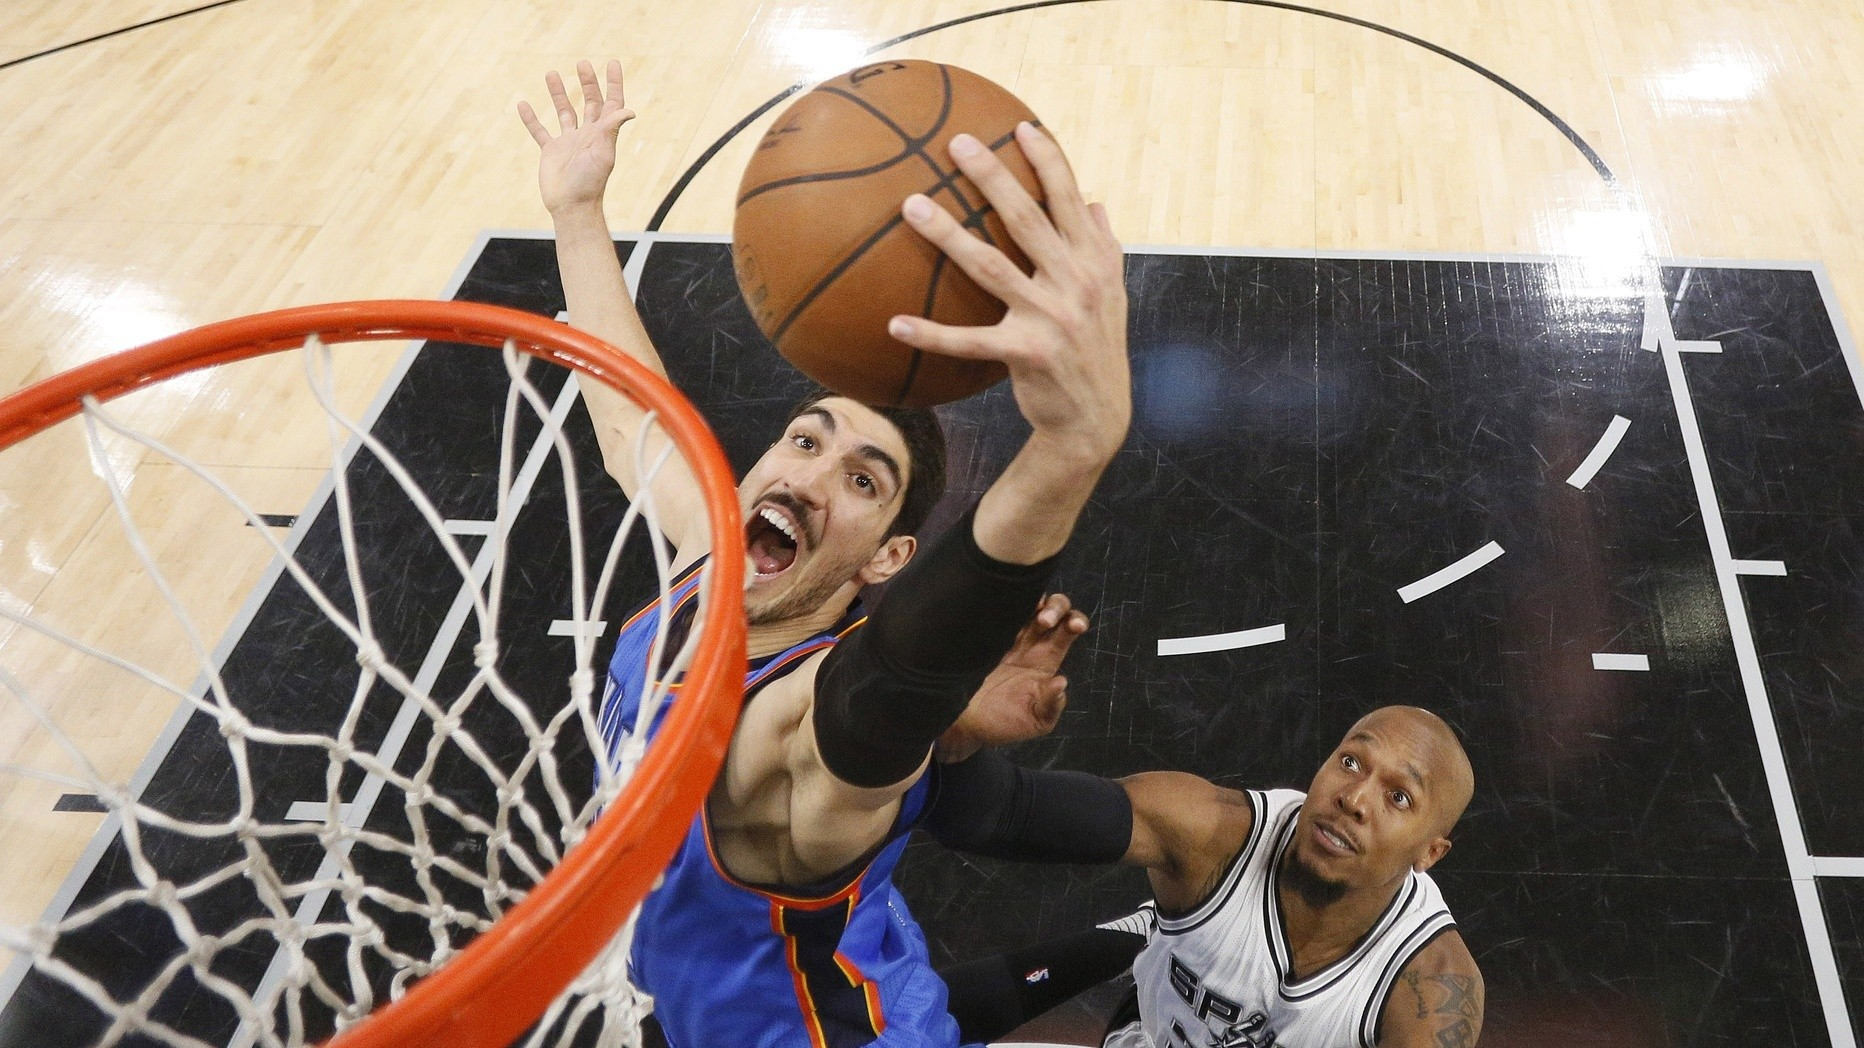 Why Enes Kanter Has a New Name (And Why His Family Disowned Him)